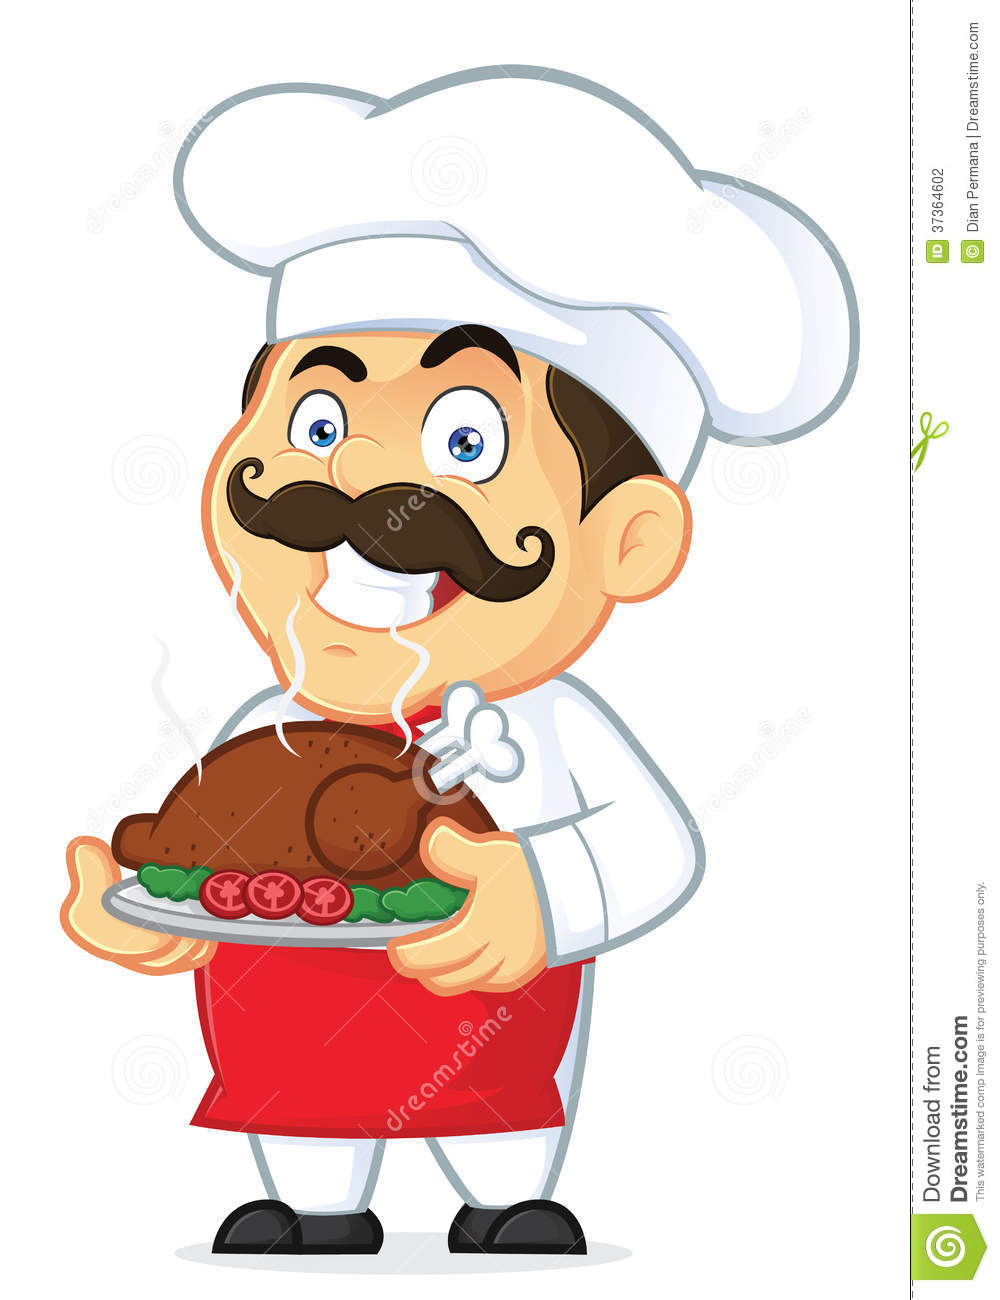 medium resolution of clipart picture of a chef cartoon character holding a baked chicken